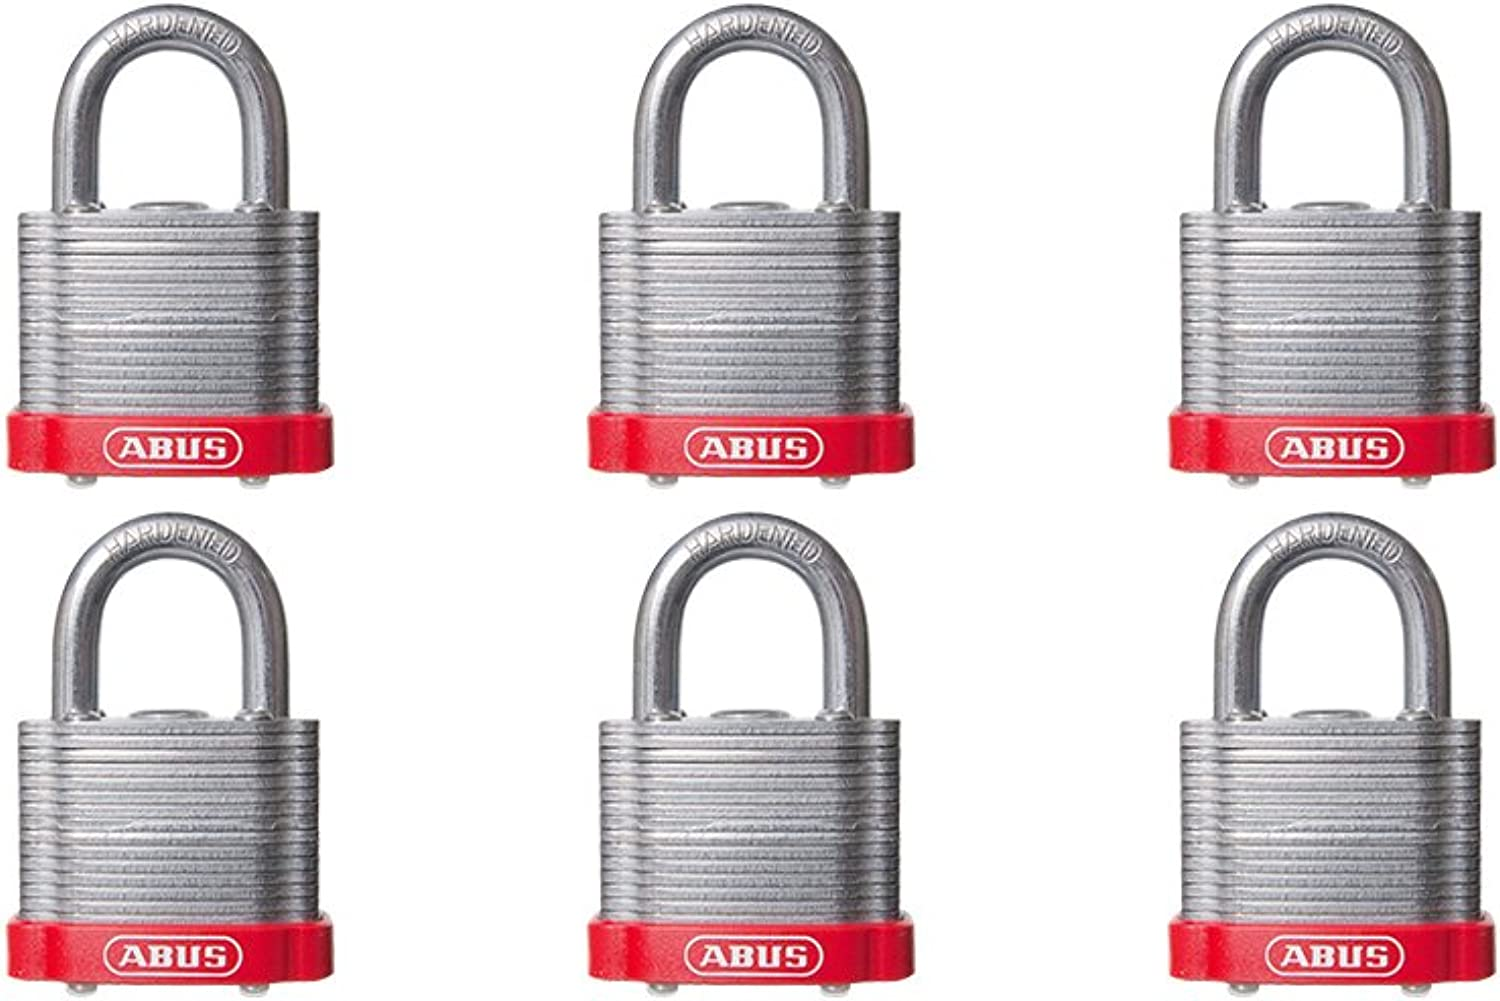 ABUS 41 40 Laminated Steel Safety Padlock Red Bumper Keyed Different  6 Pack